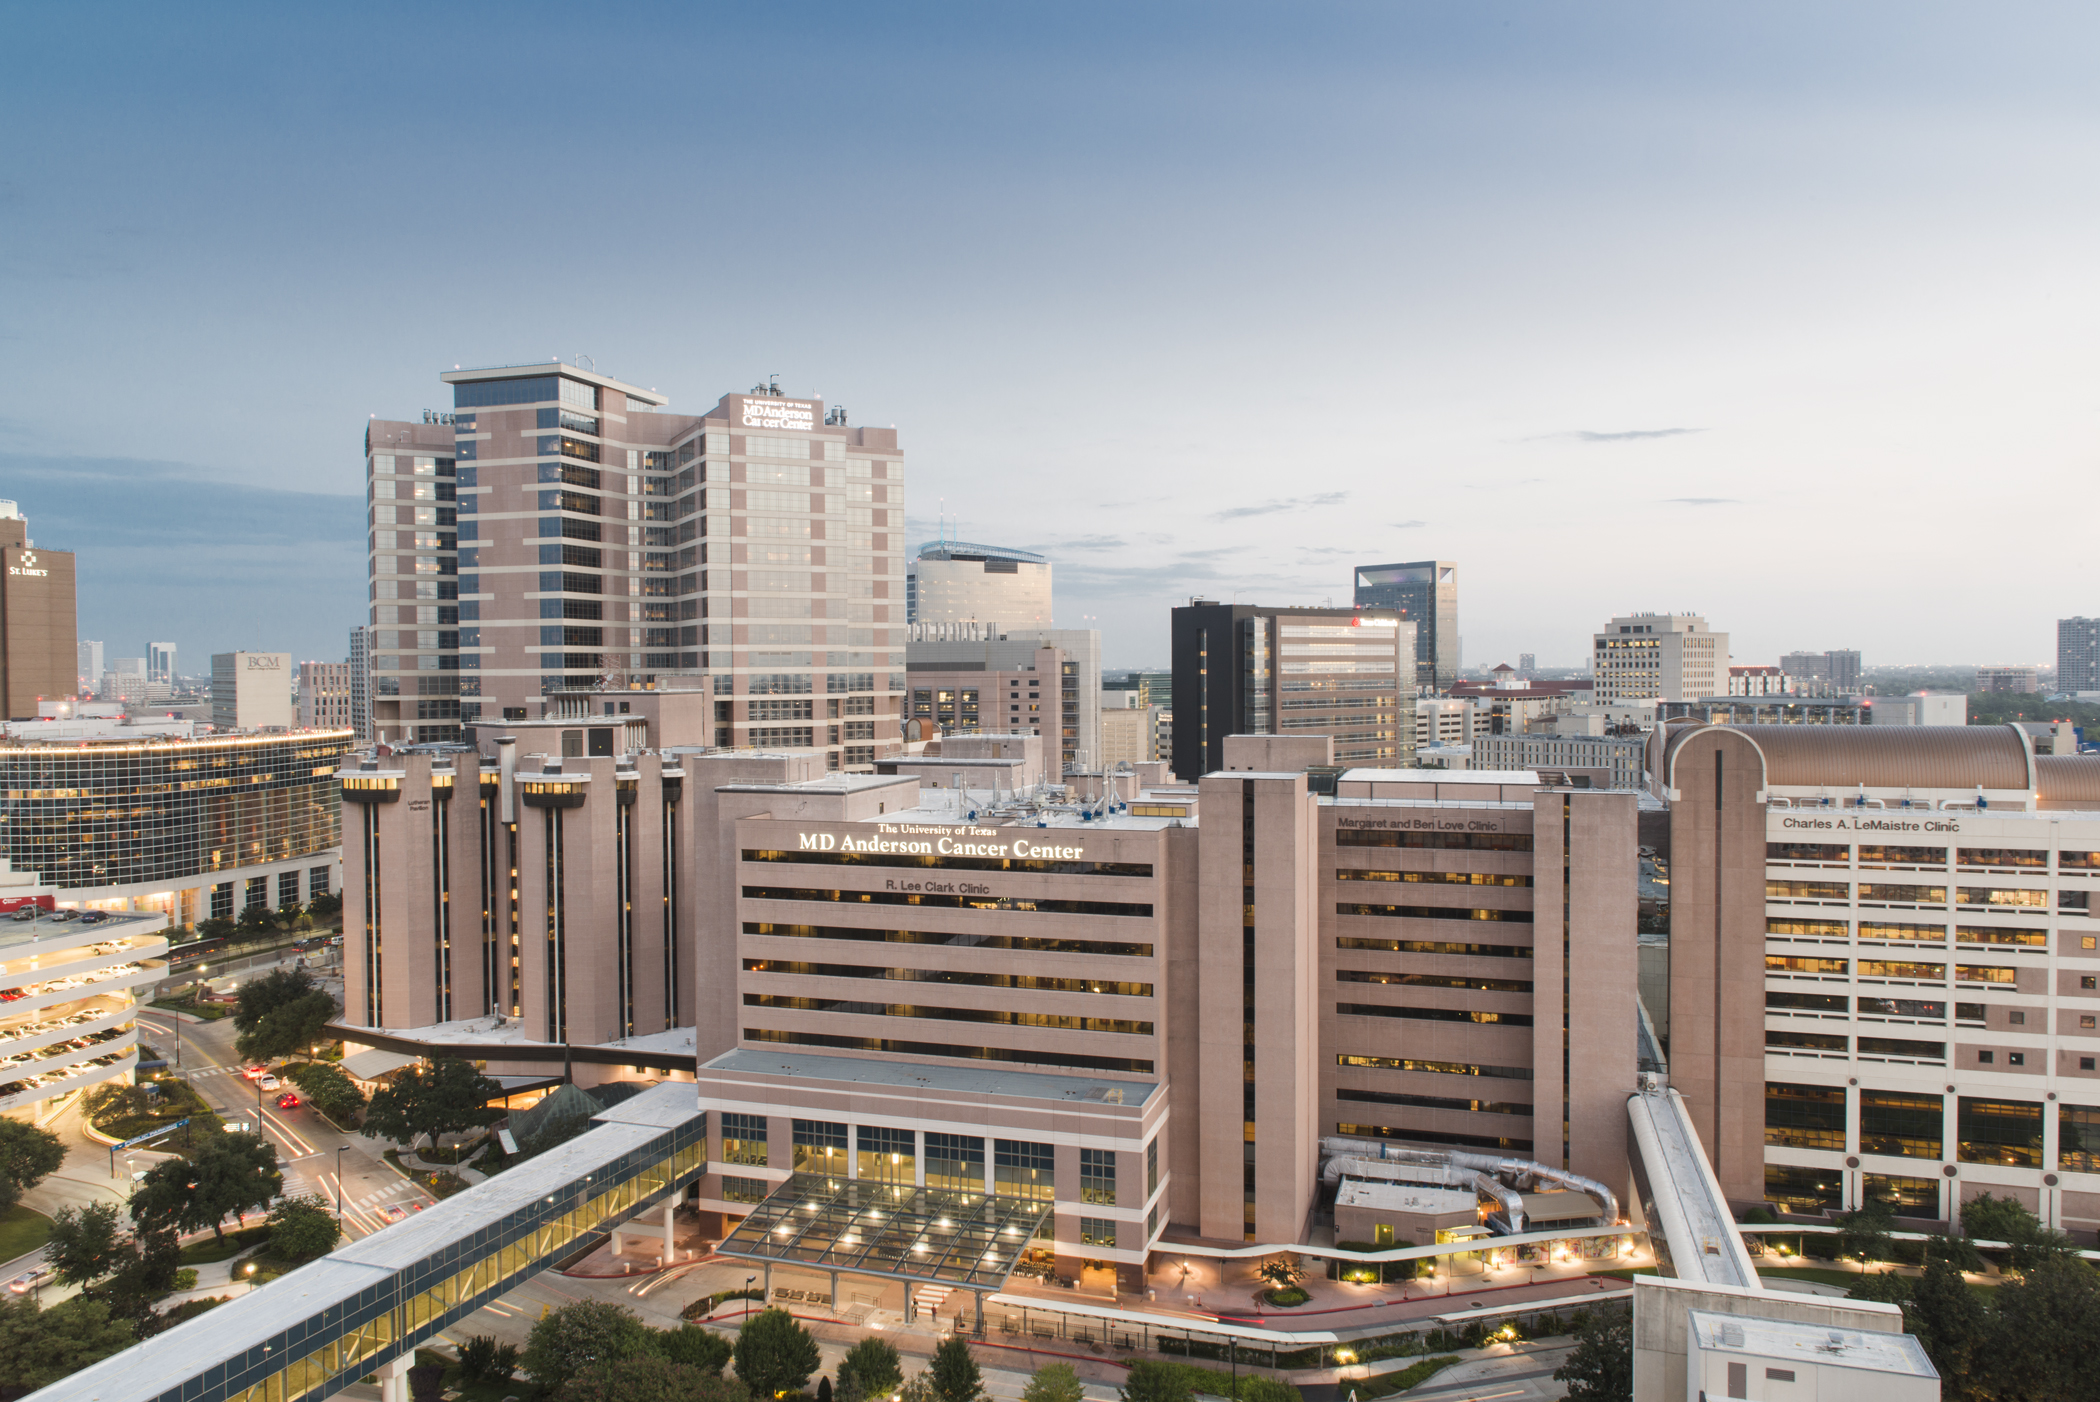 Scripps Health And Md Anderson Cancer Center Announce Partnership To Create Clinically Integrated Cancer Program Md Anderson Cancer Center